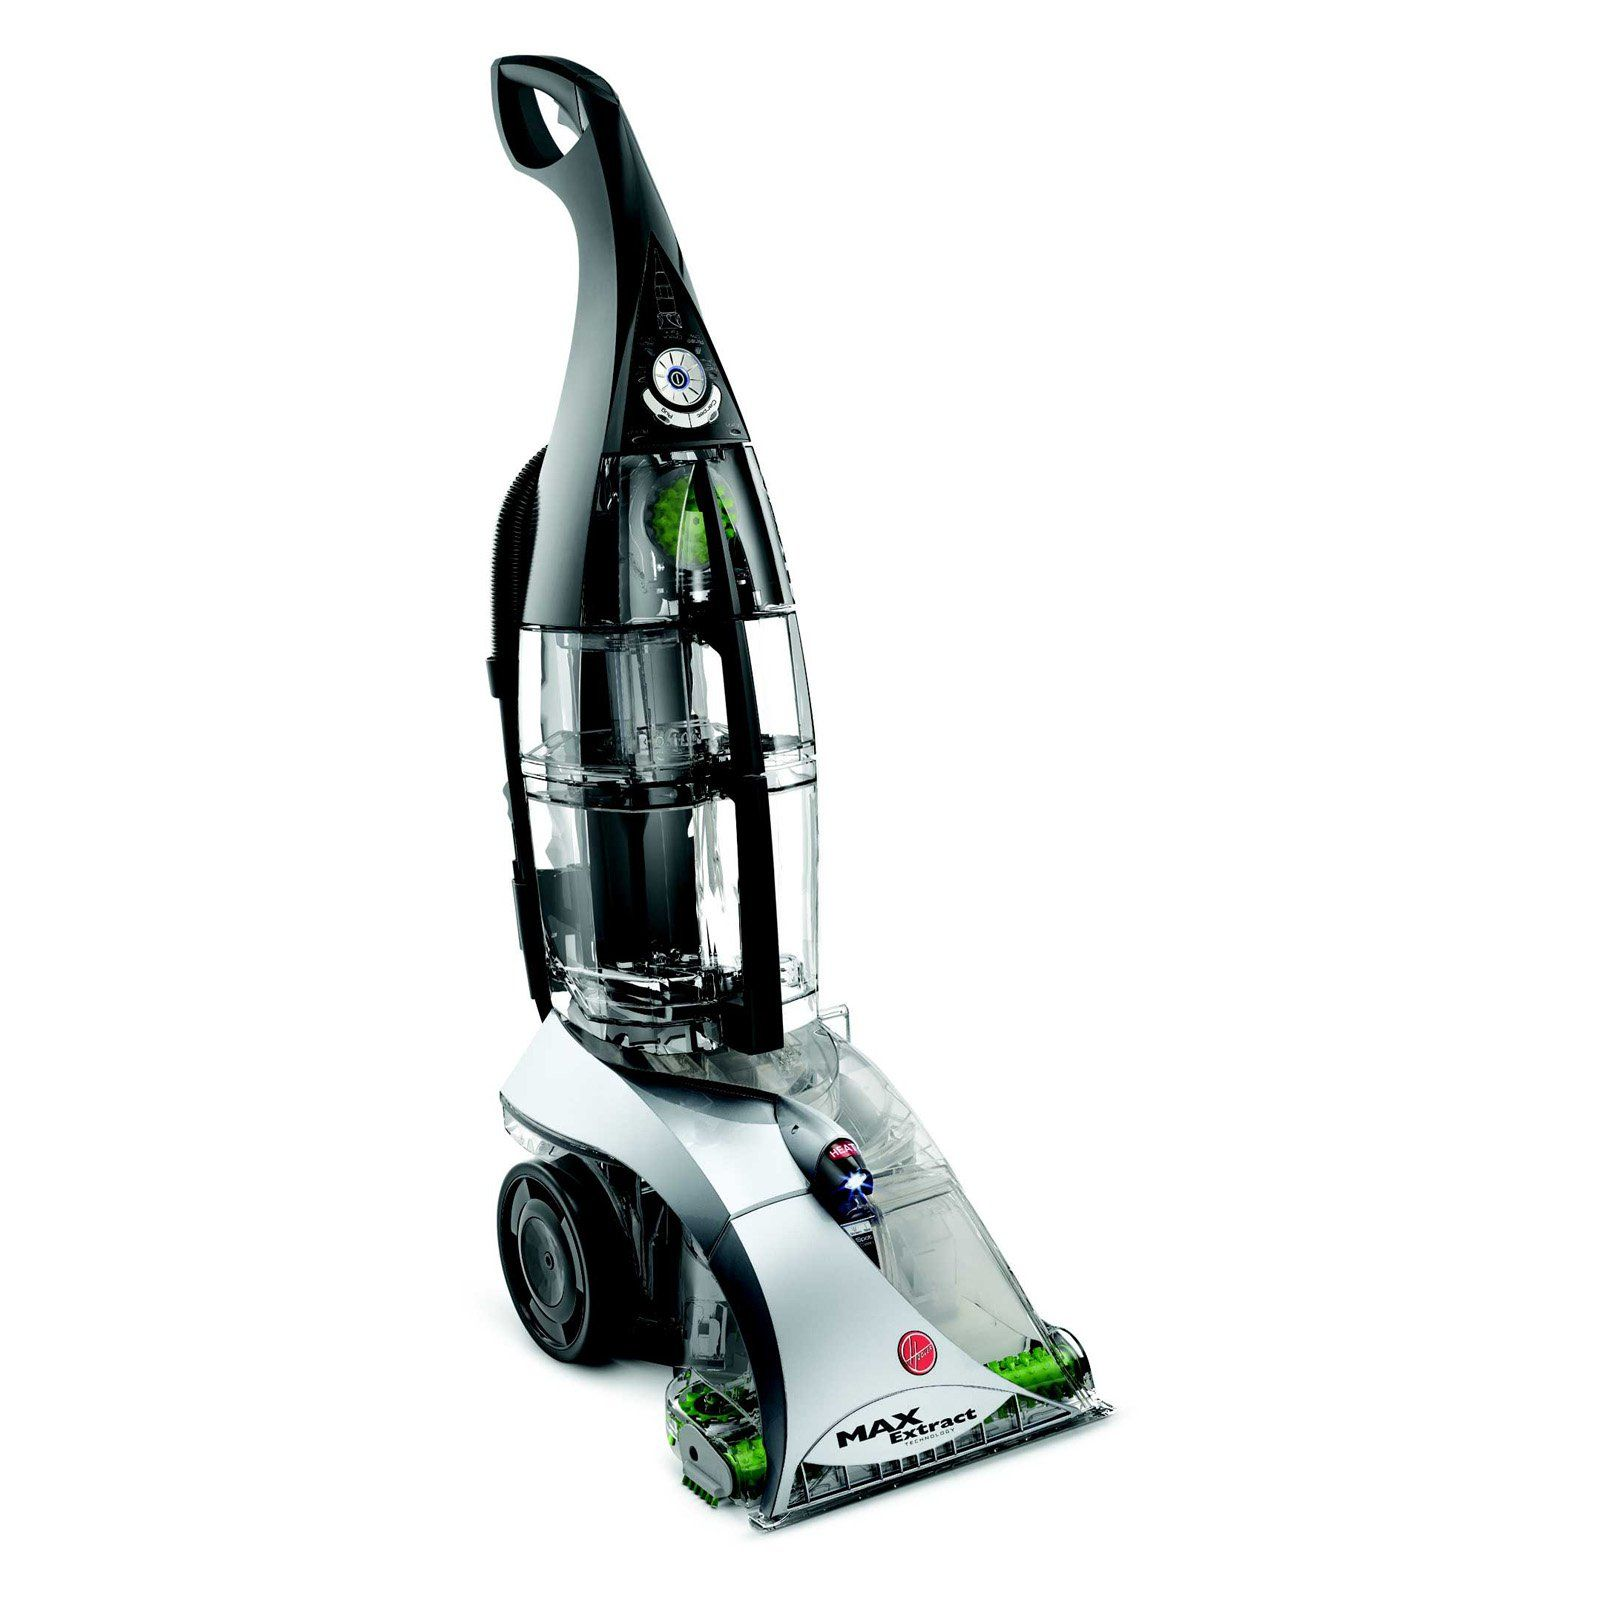 Buy Now On Amazon Com Gt Gt Http Amzn To 2kzhk7h Hoover